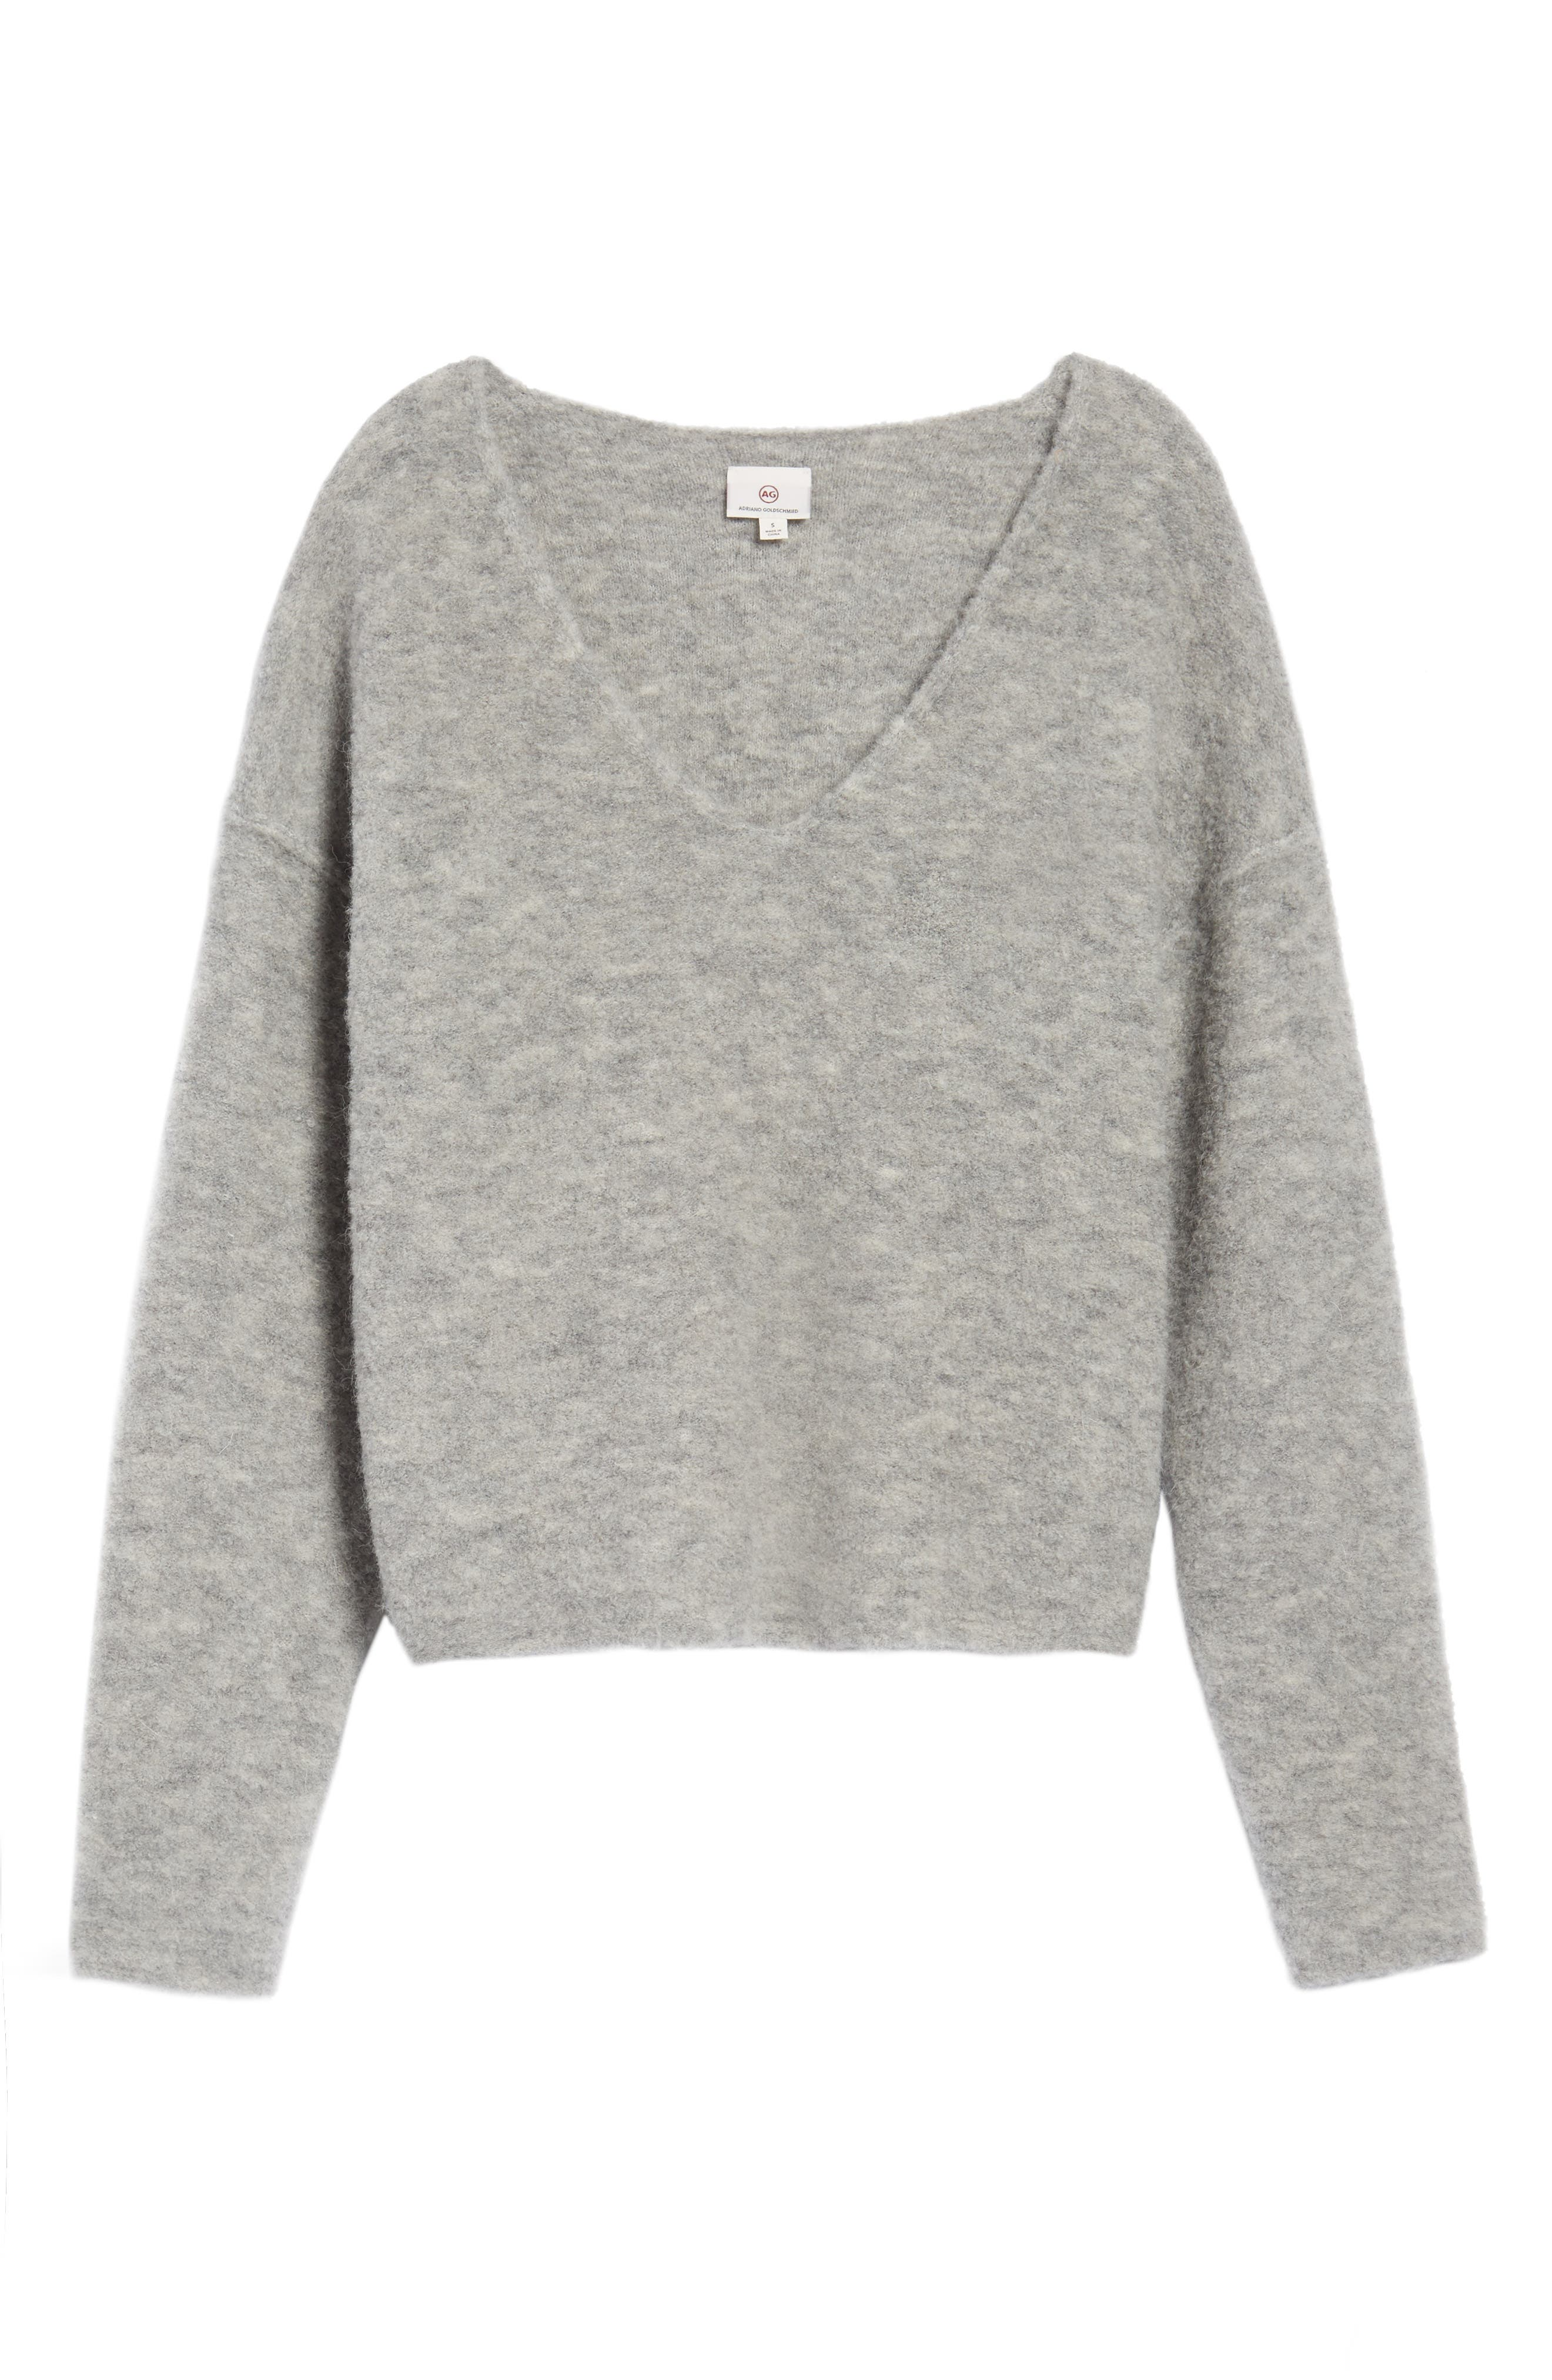 Skye Sweater,                             Alternate thumbnail 6, color,                             Heather Grey